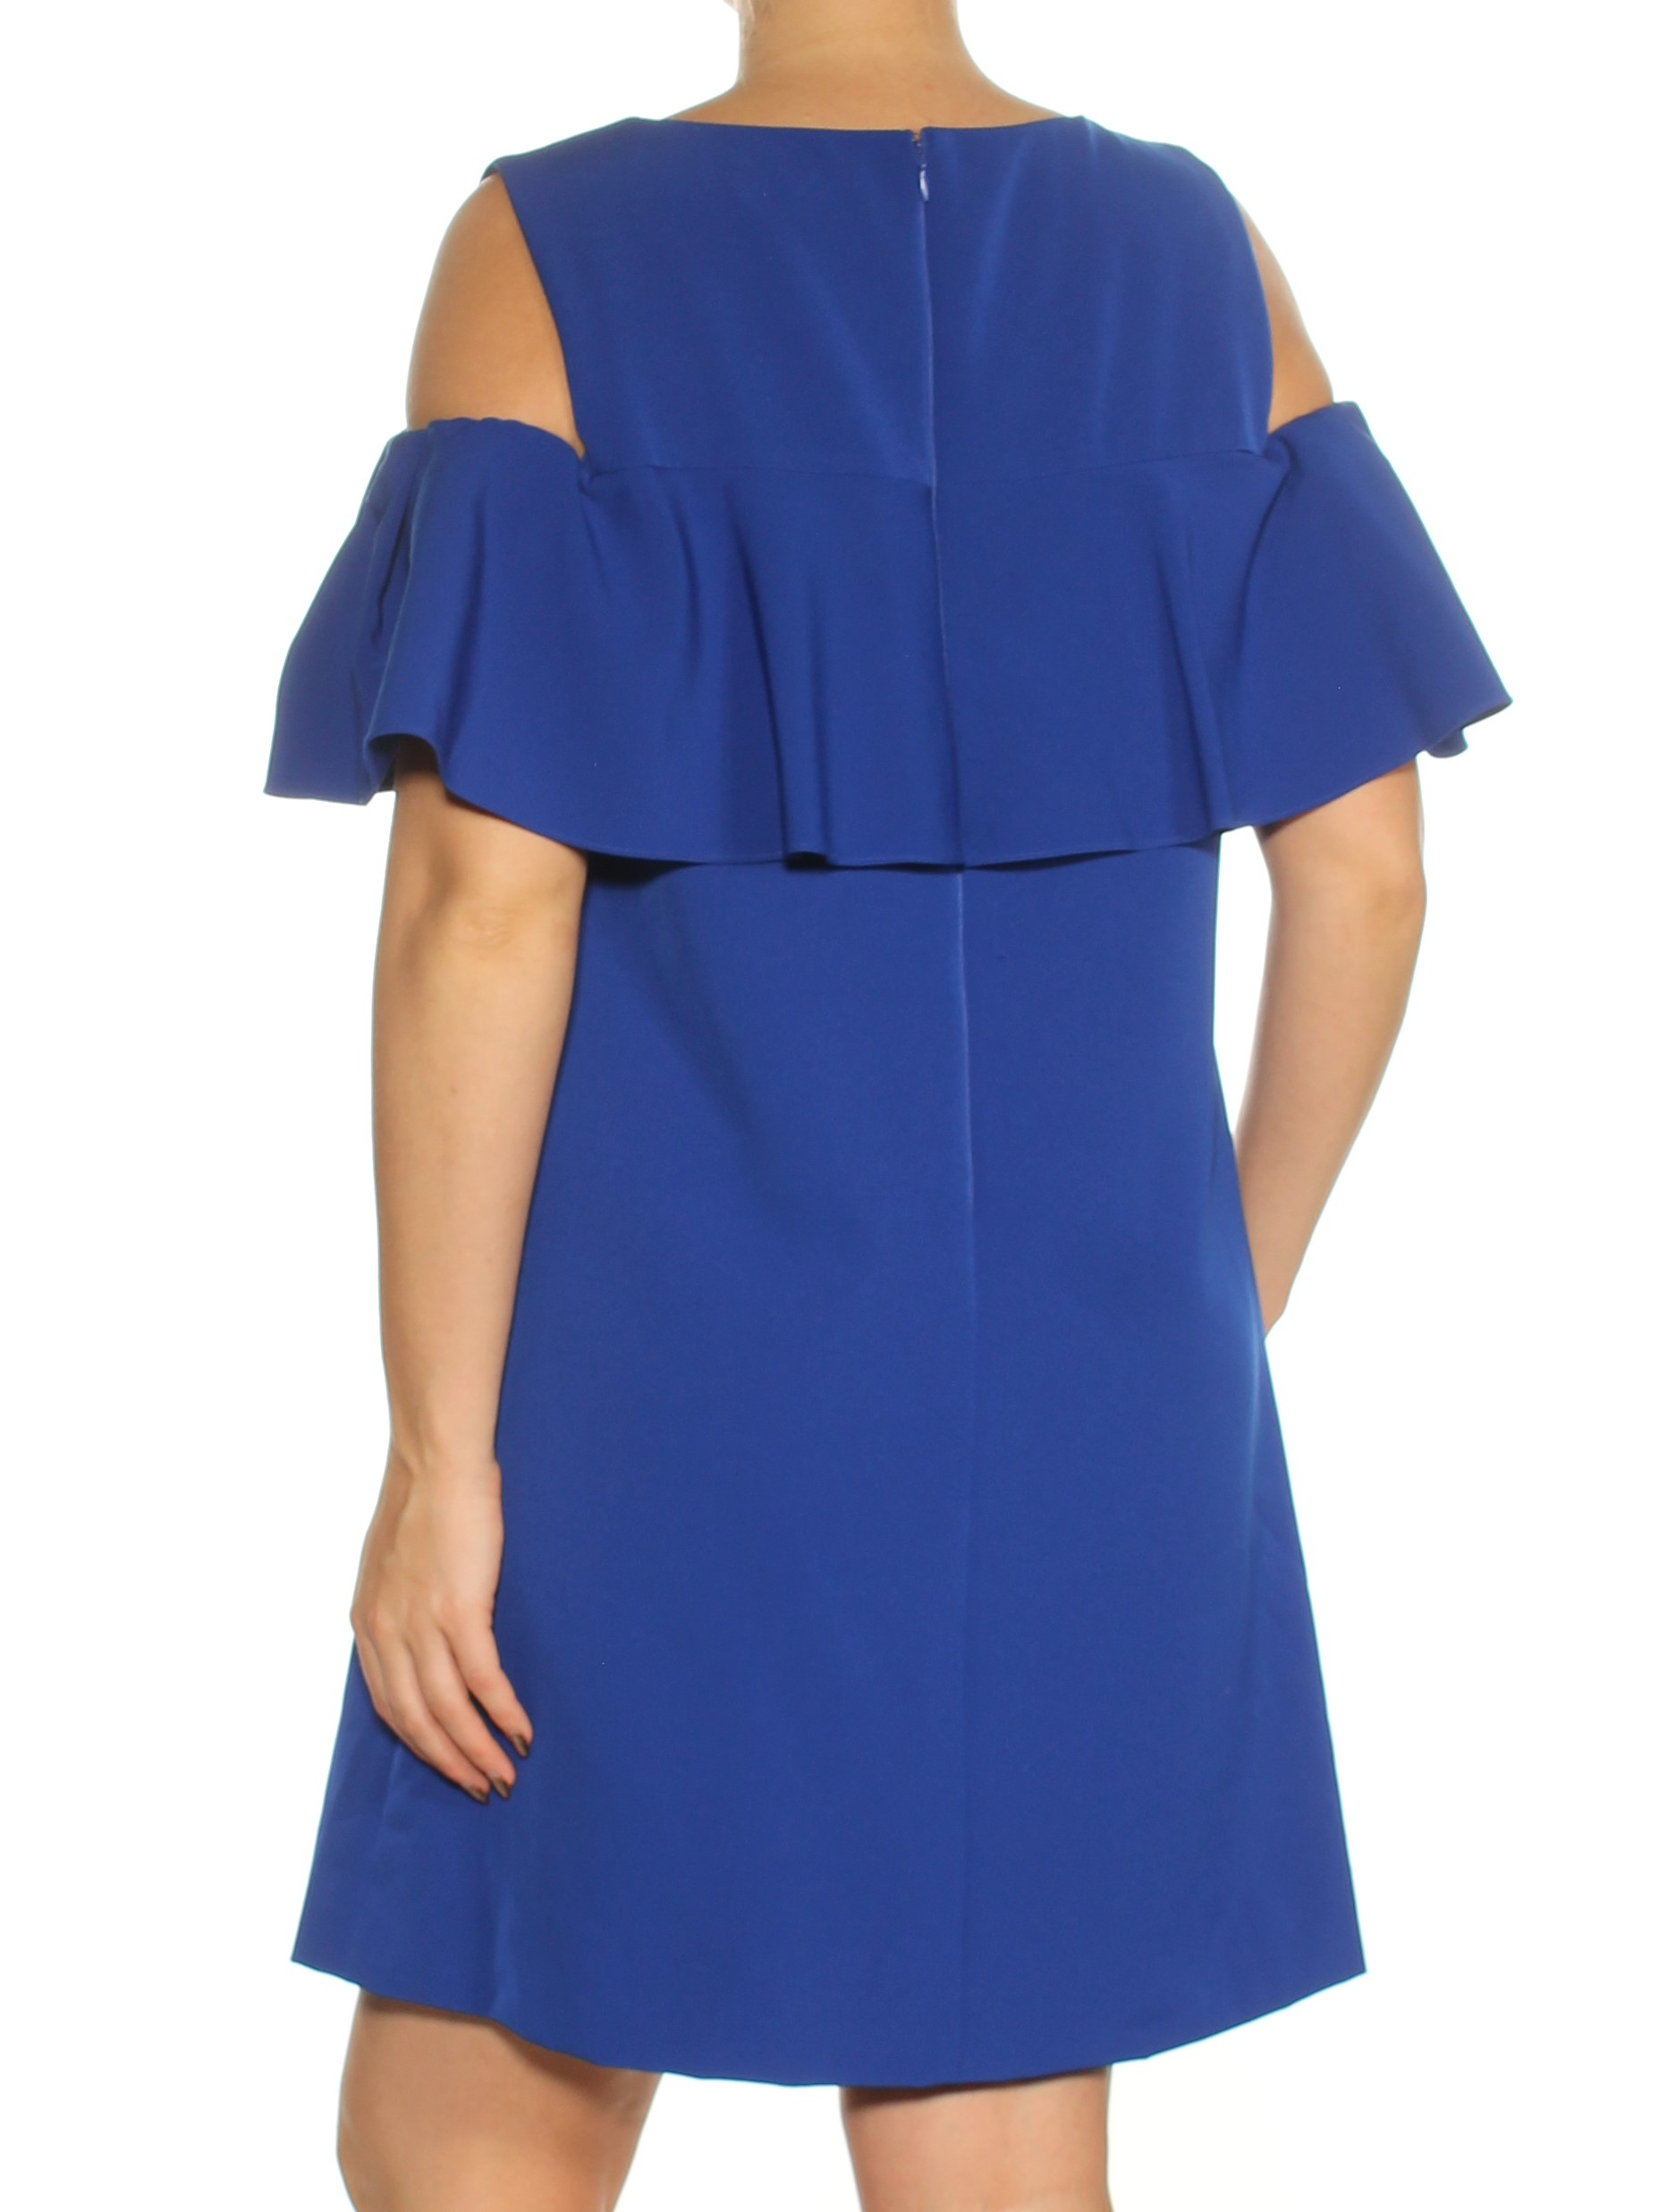 8f9cea8d775e84 TAHARI  162 Womens New 1416 Blue Cold Shoulder Ruffled Shift Dress 12 B+B.  gallery image gallery image. TAHARI GUARANTEED AUTHENTIC!